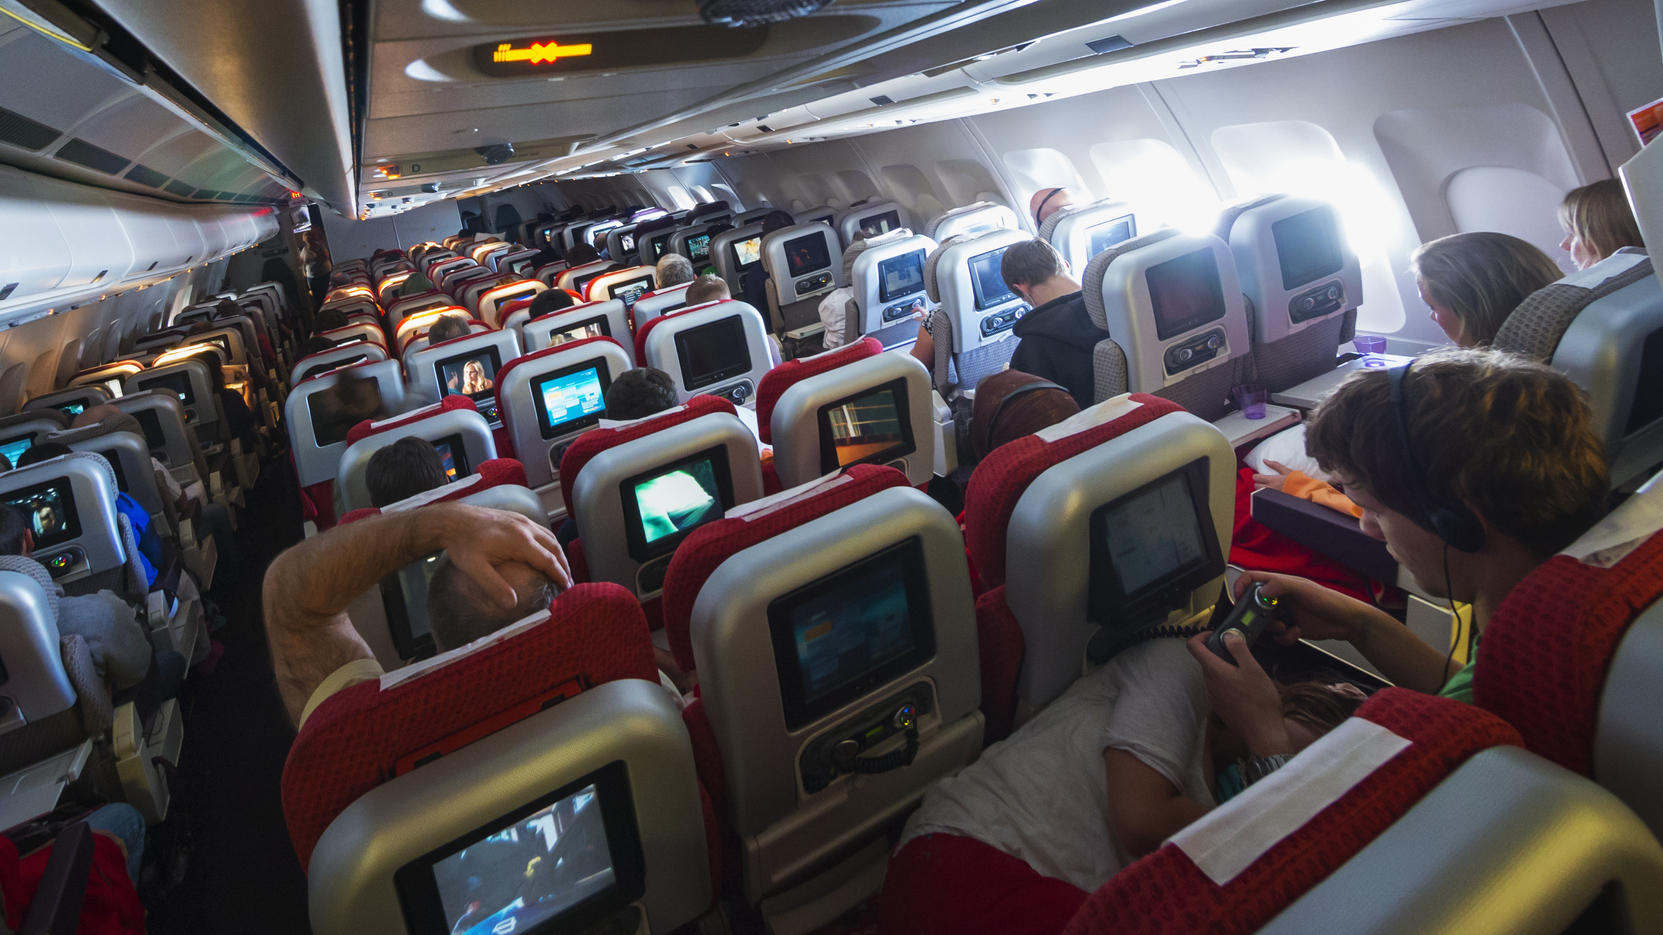 Wheelchairs On Planes: Why Can't Passengers Use Their Own